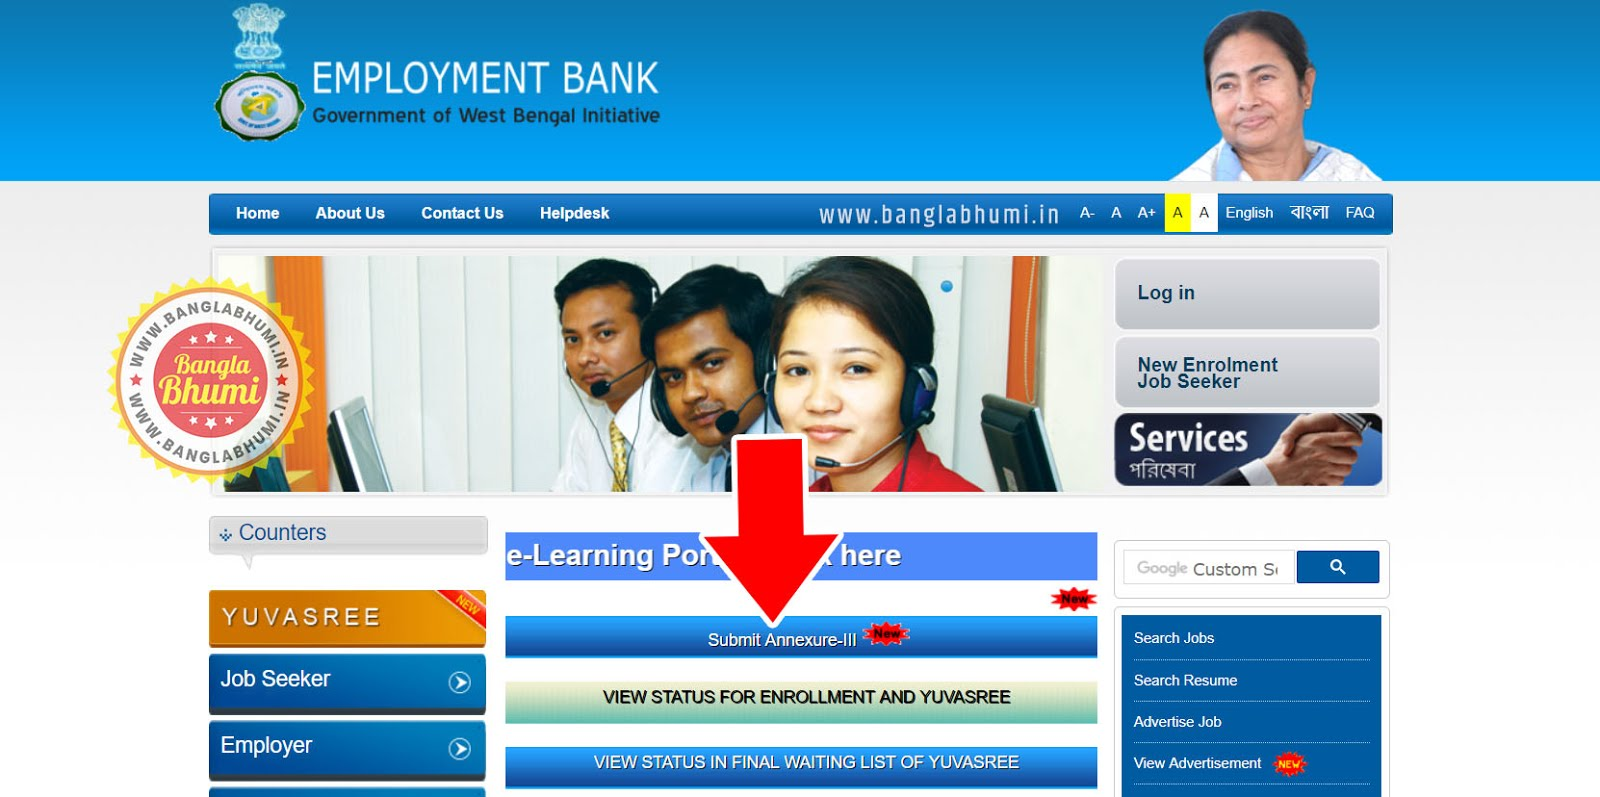 How to Update Annexure-III Employment Bank West Bengal - Step 1